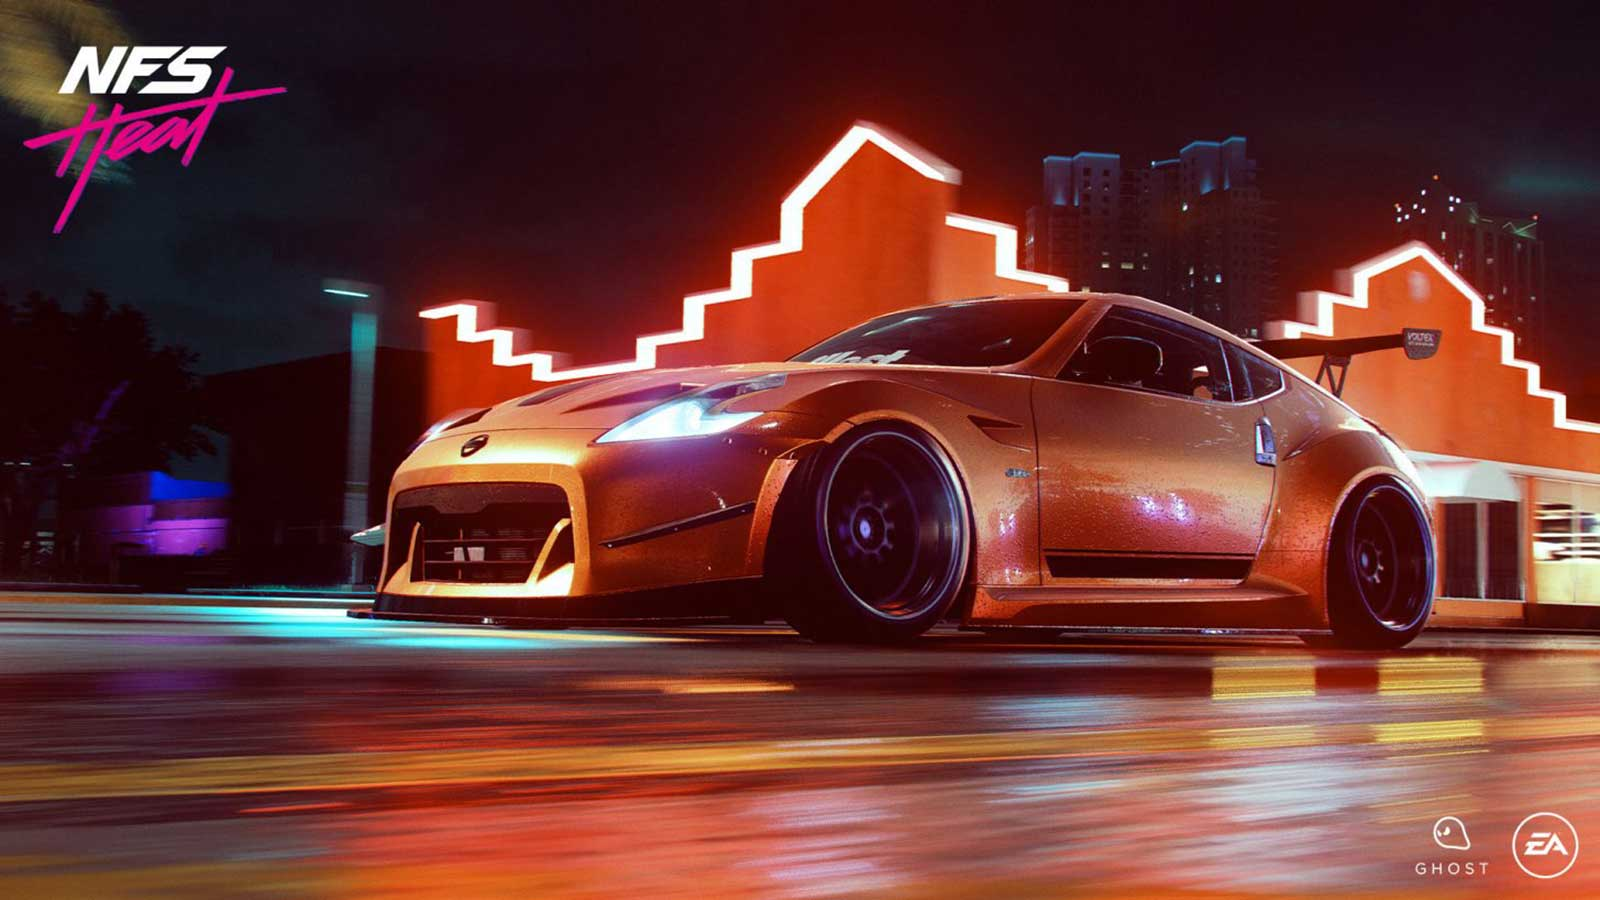 nfs 1920x1080 reveal week 11 musicisnfsdna 01.jpg.adapt .crop16x9 babt